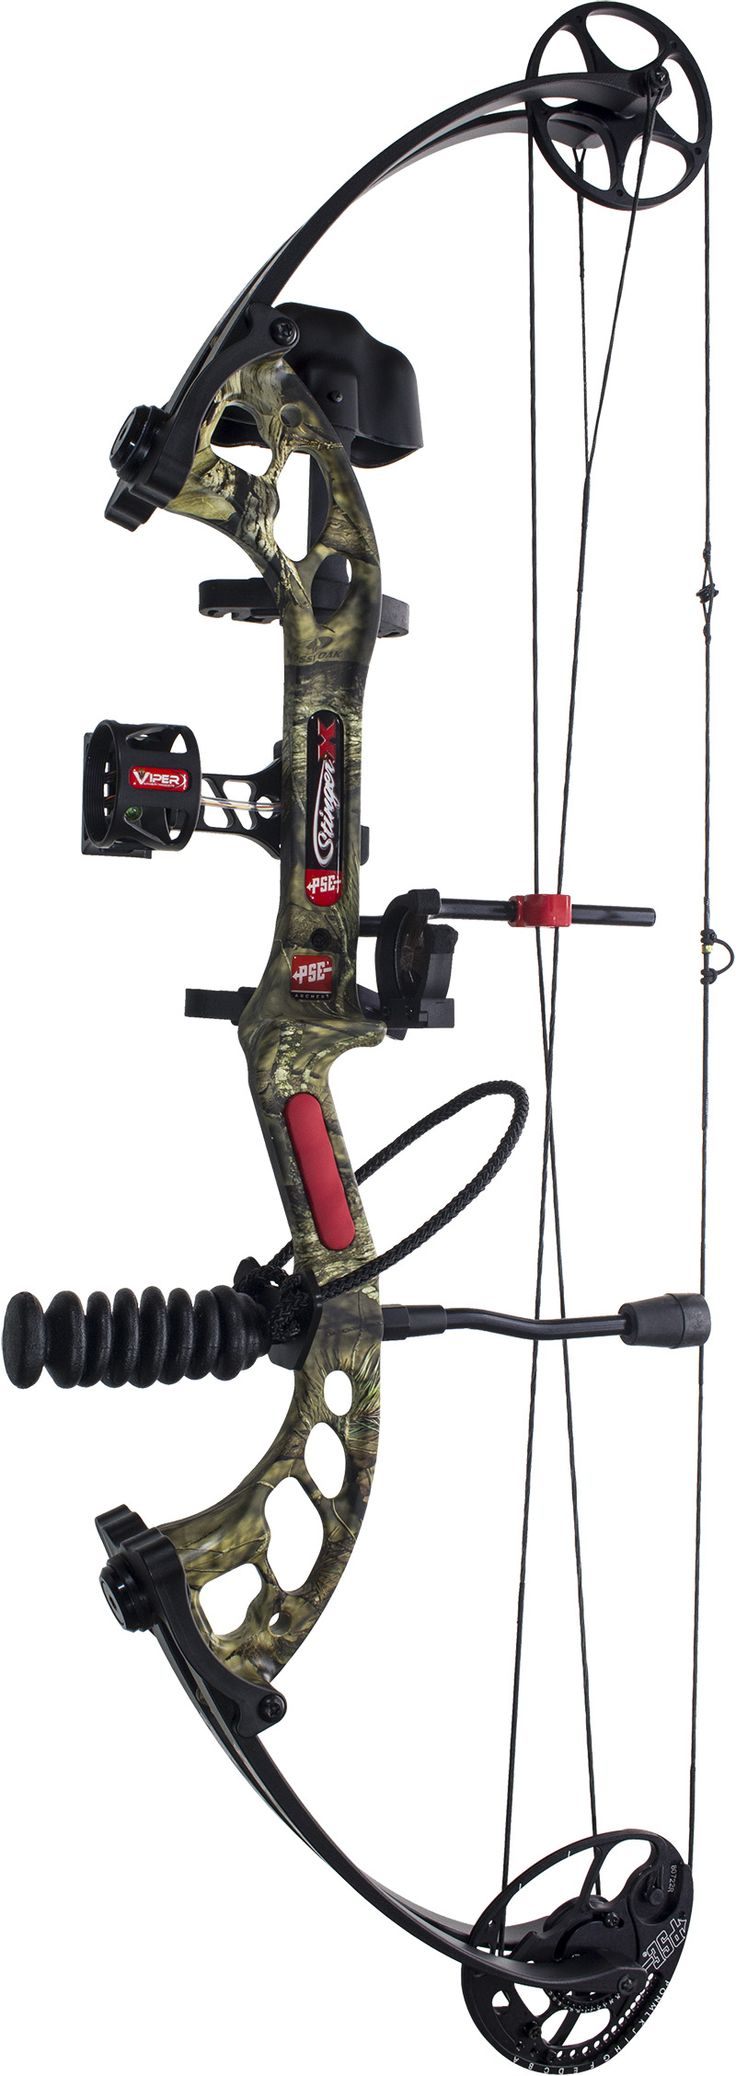 Side view of the PSE Stinger X Camo fully-outfitted with accessories.